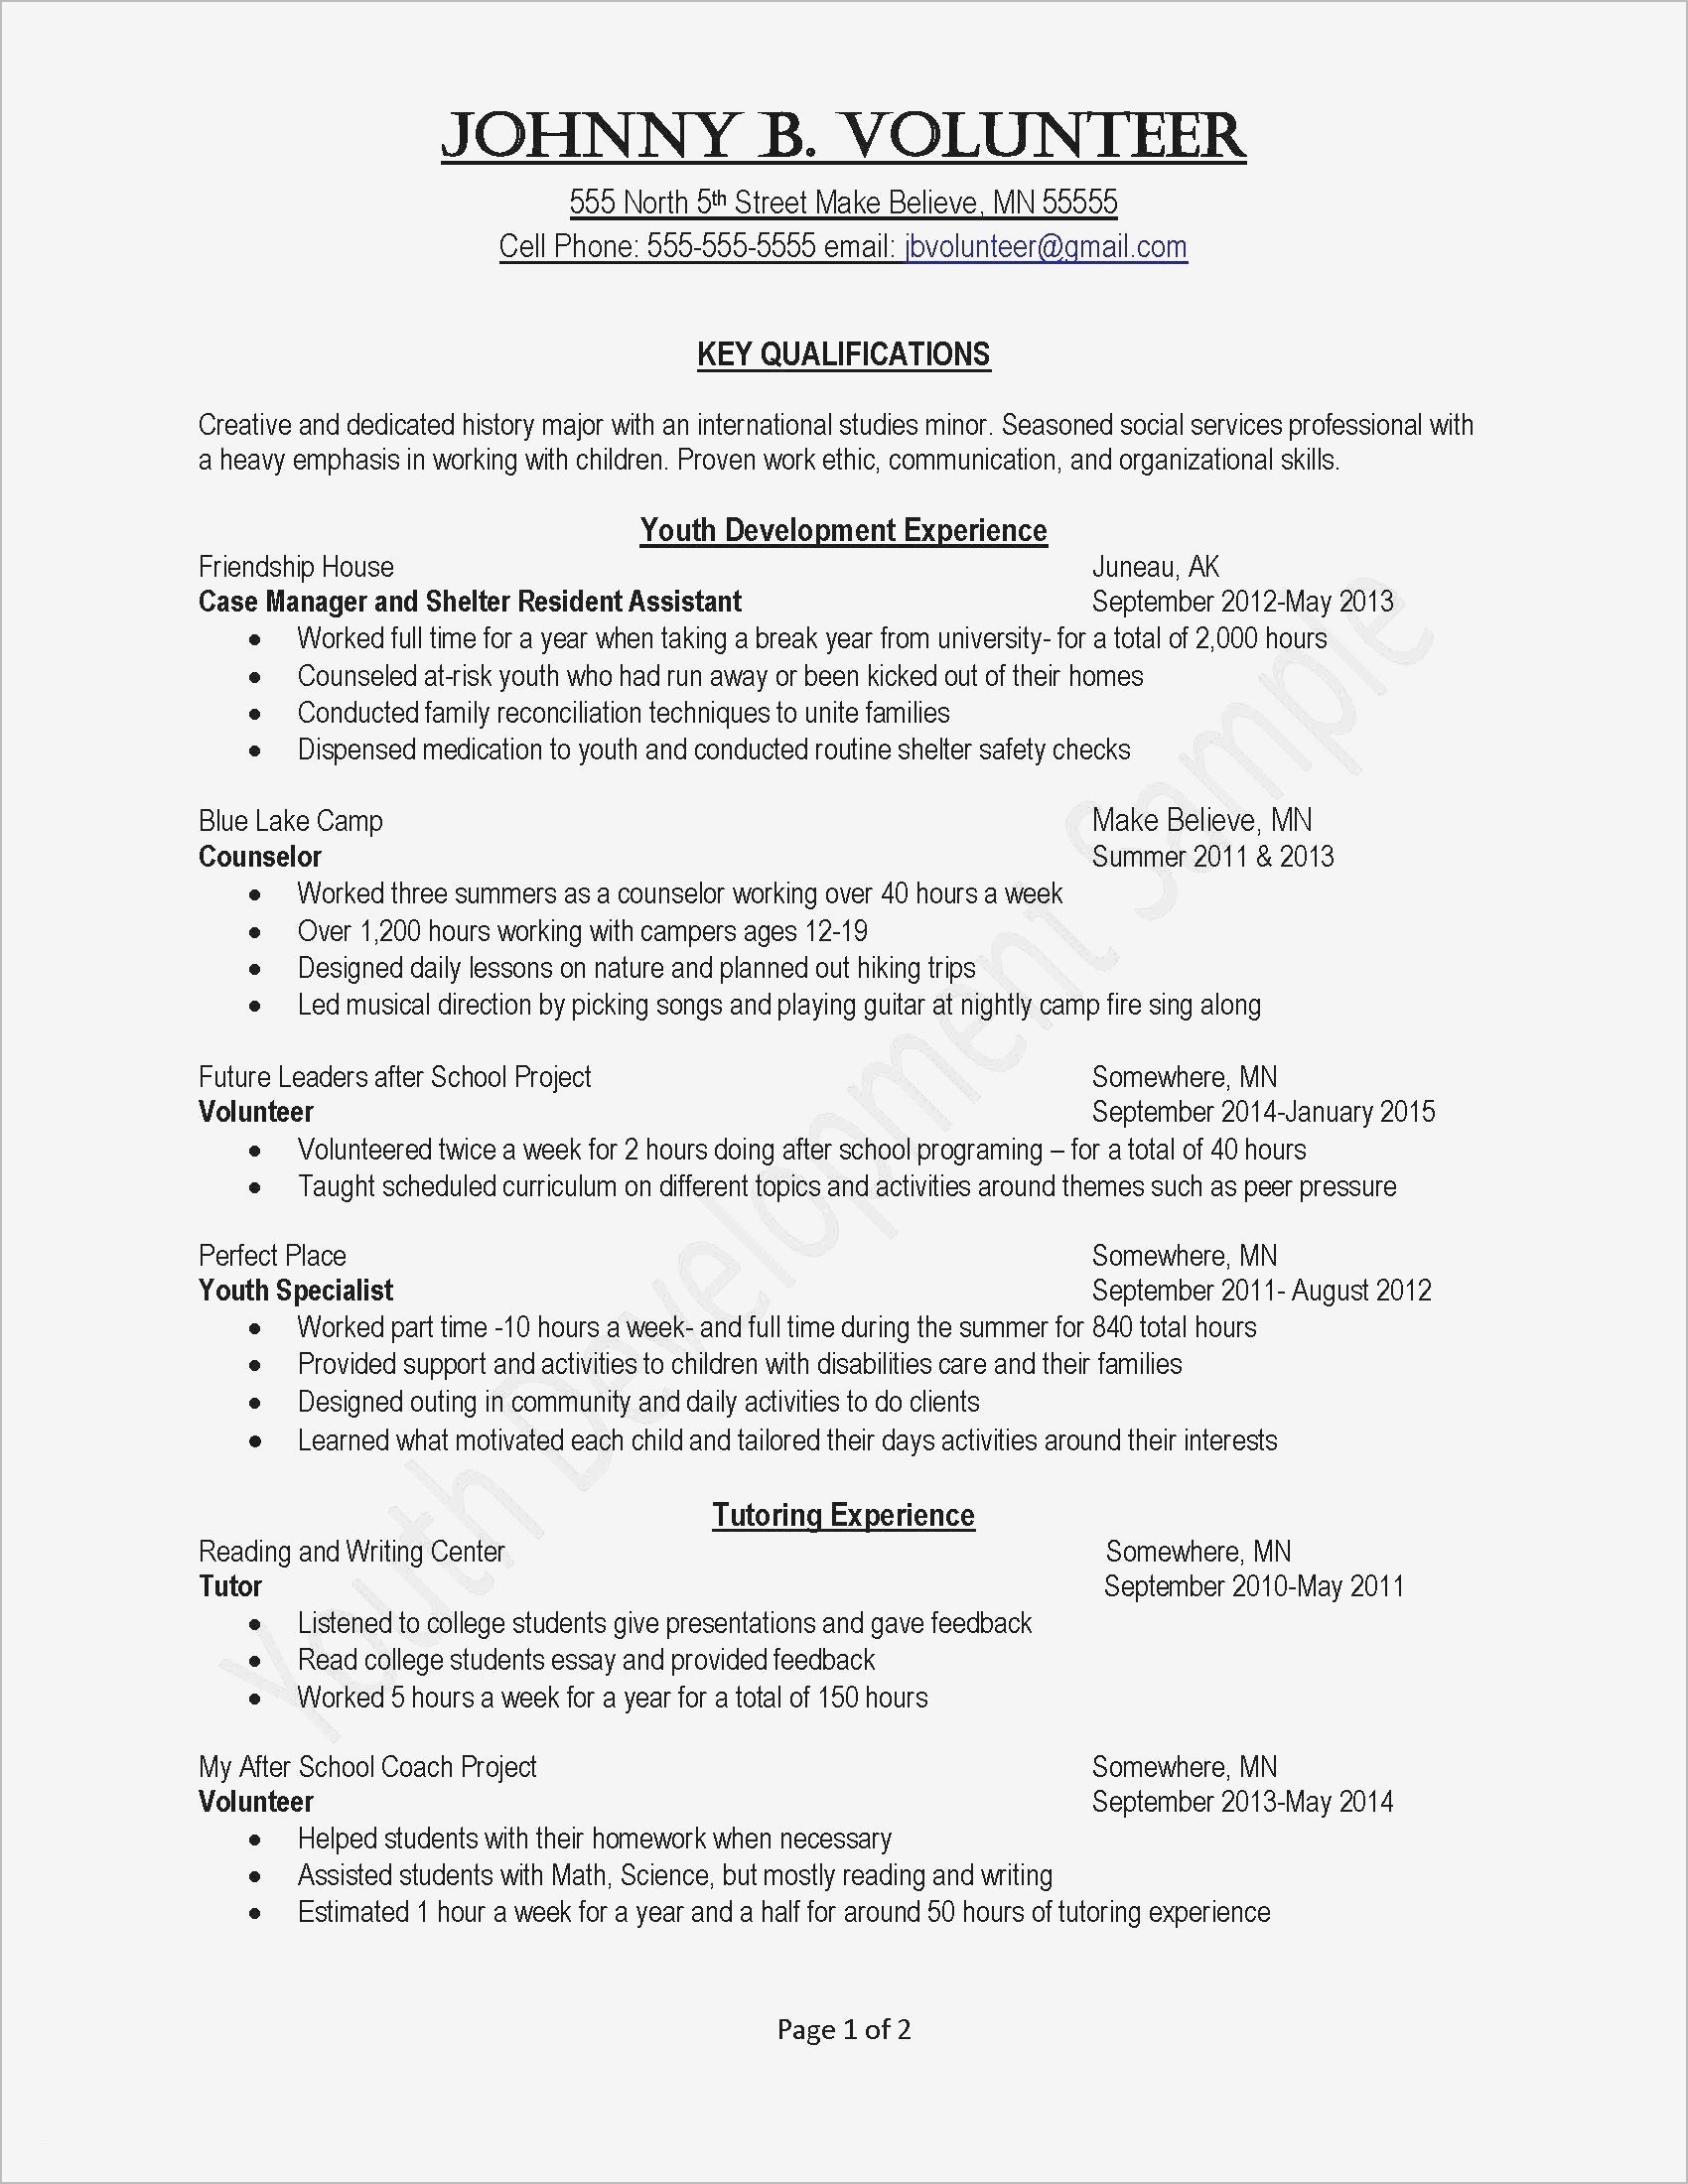 Email Sales Letter Template - Cover Letter for Sales Job Samples Valid Job Fer Letter Template Us